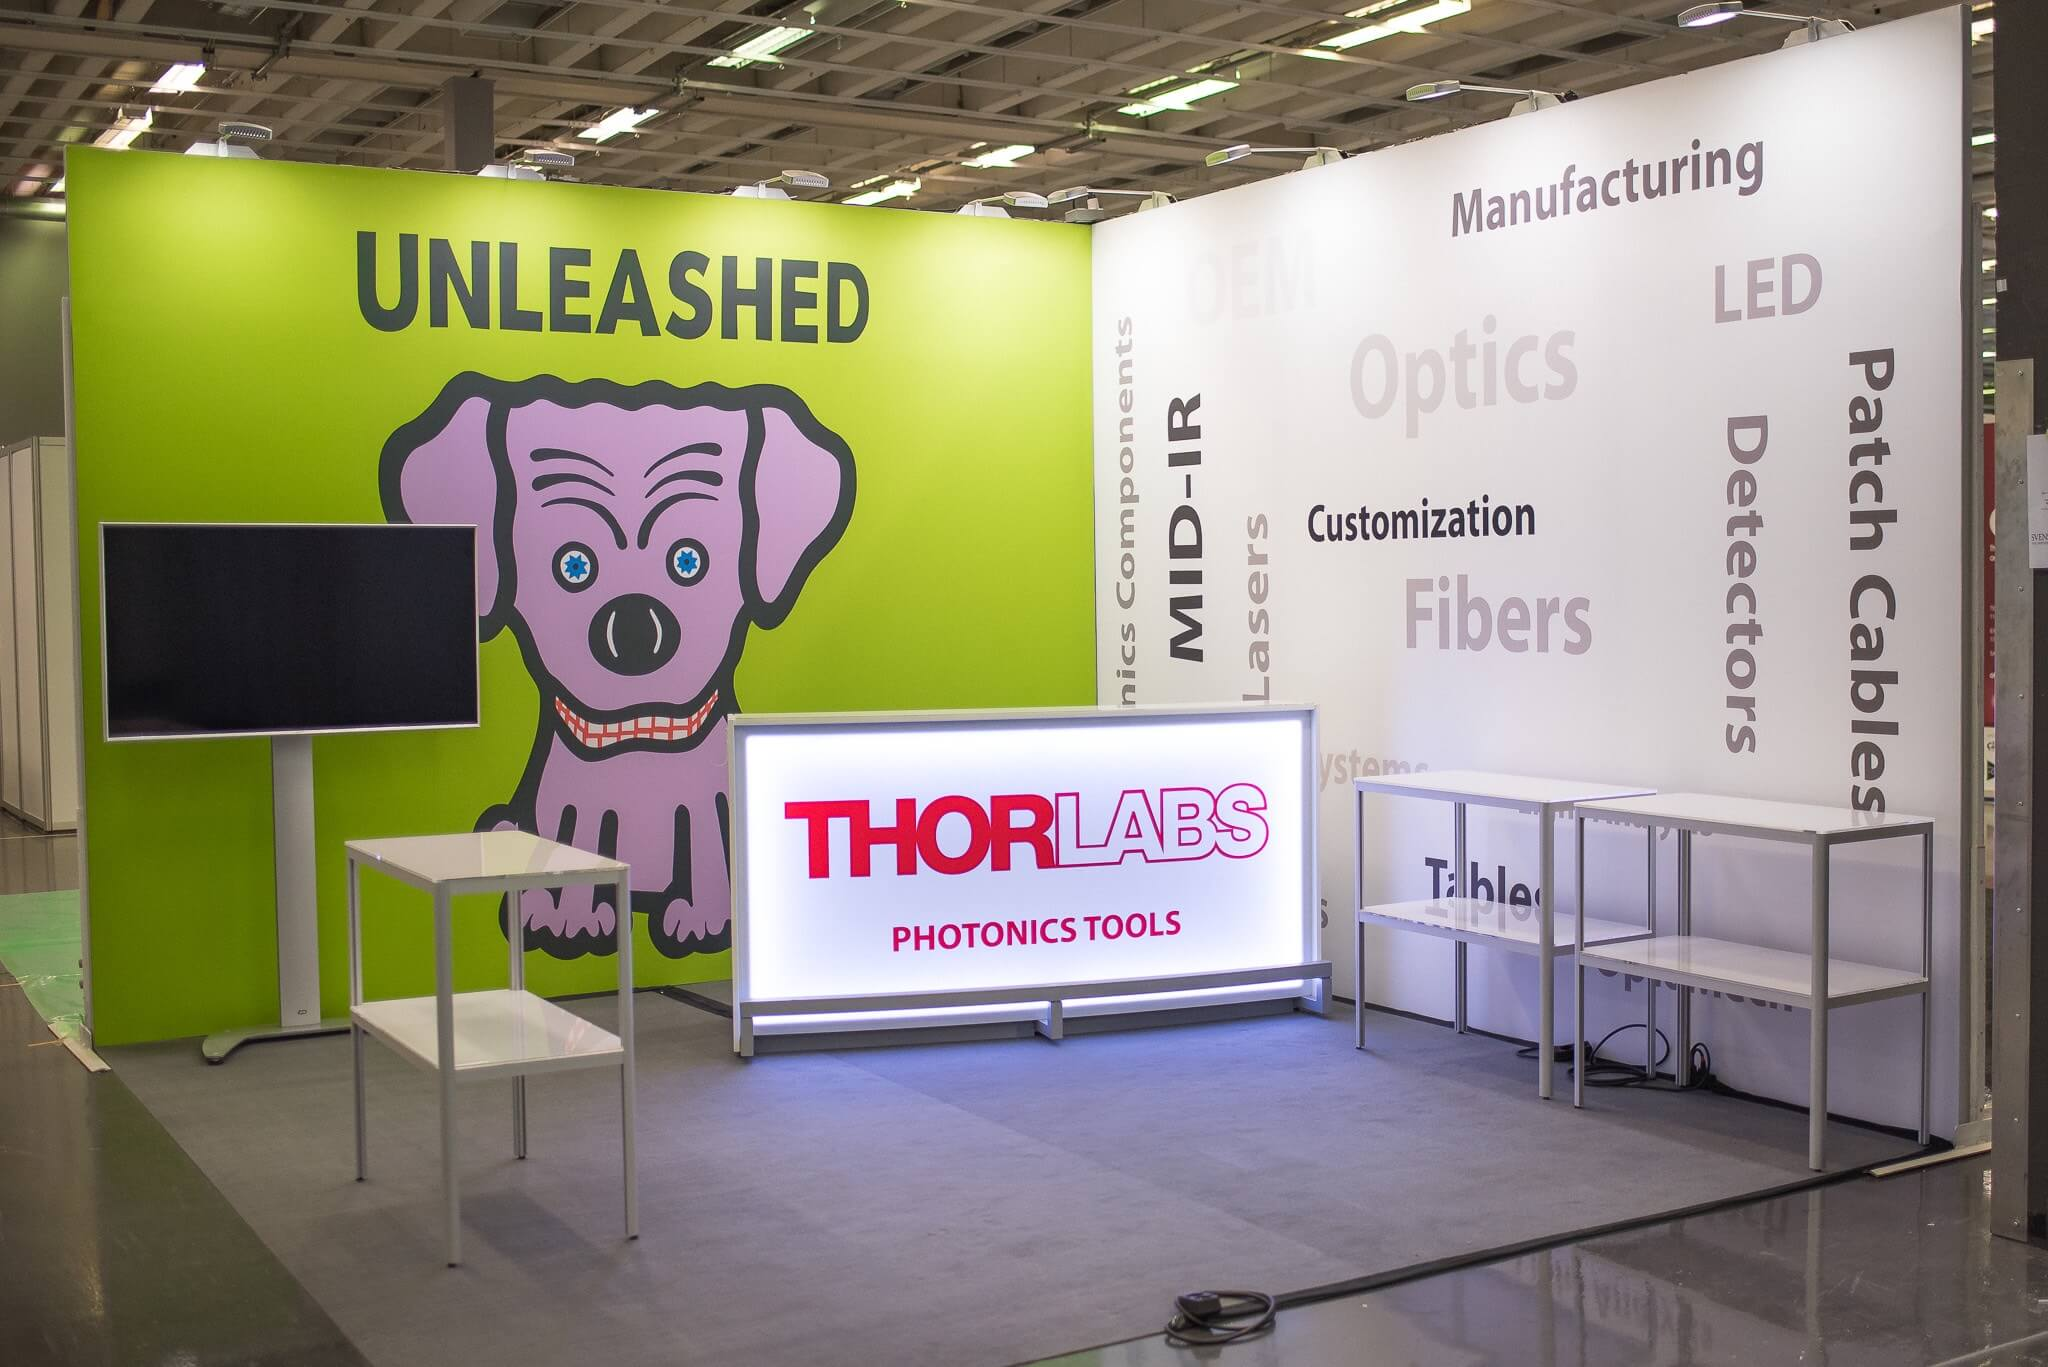 Thorlabs LED Bardisk Front Row Exhibitions